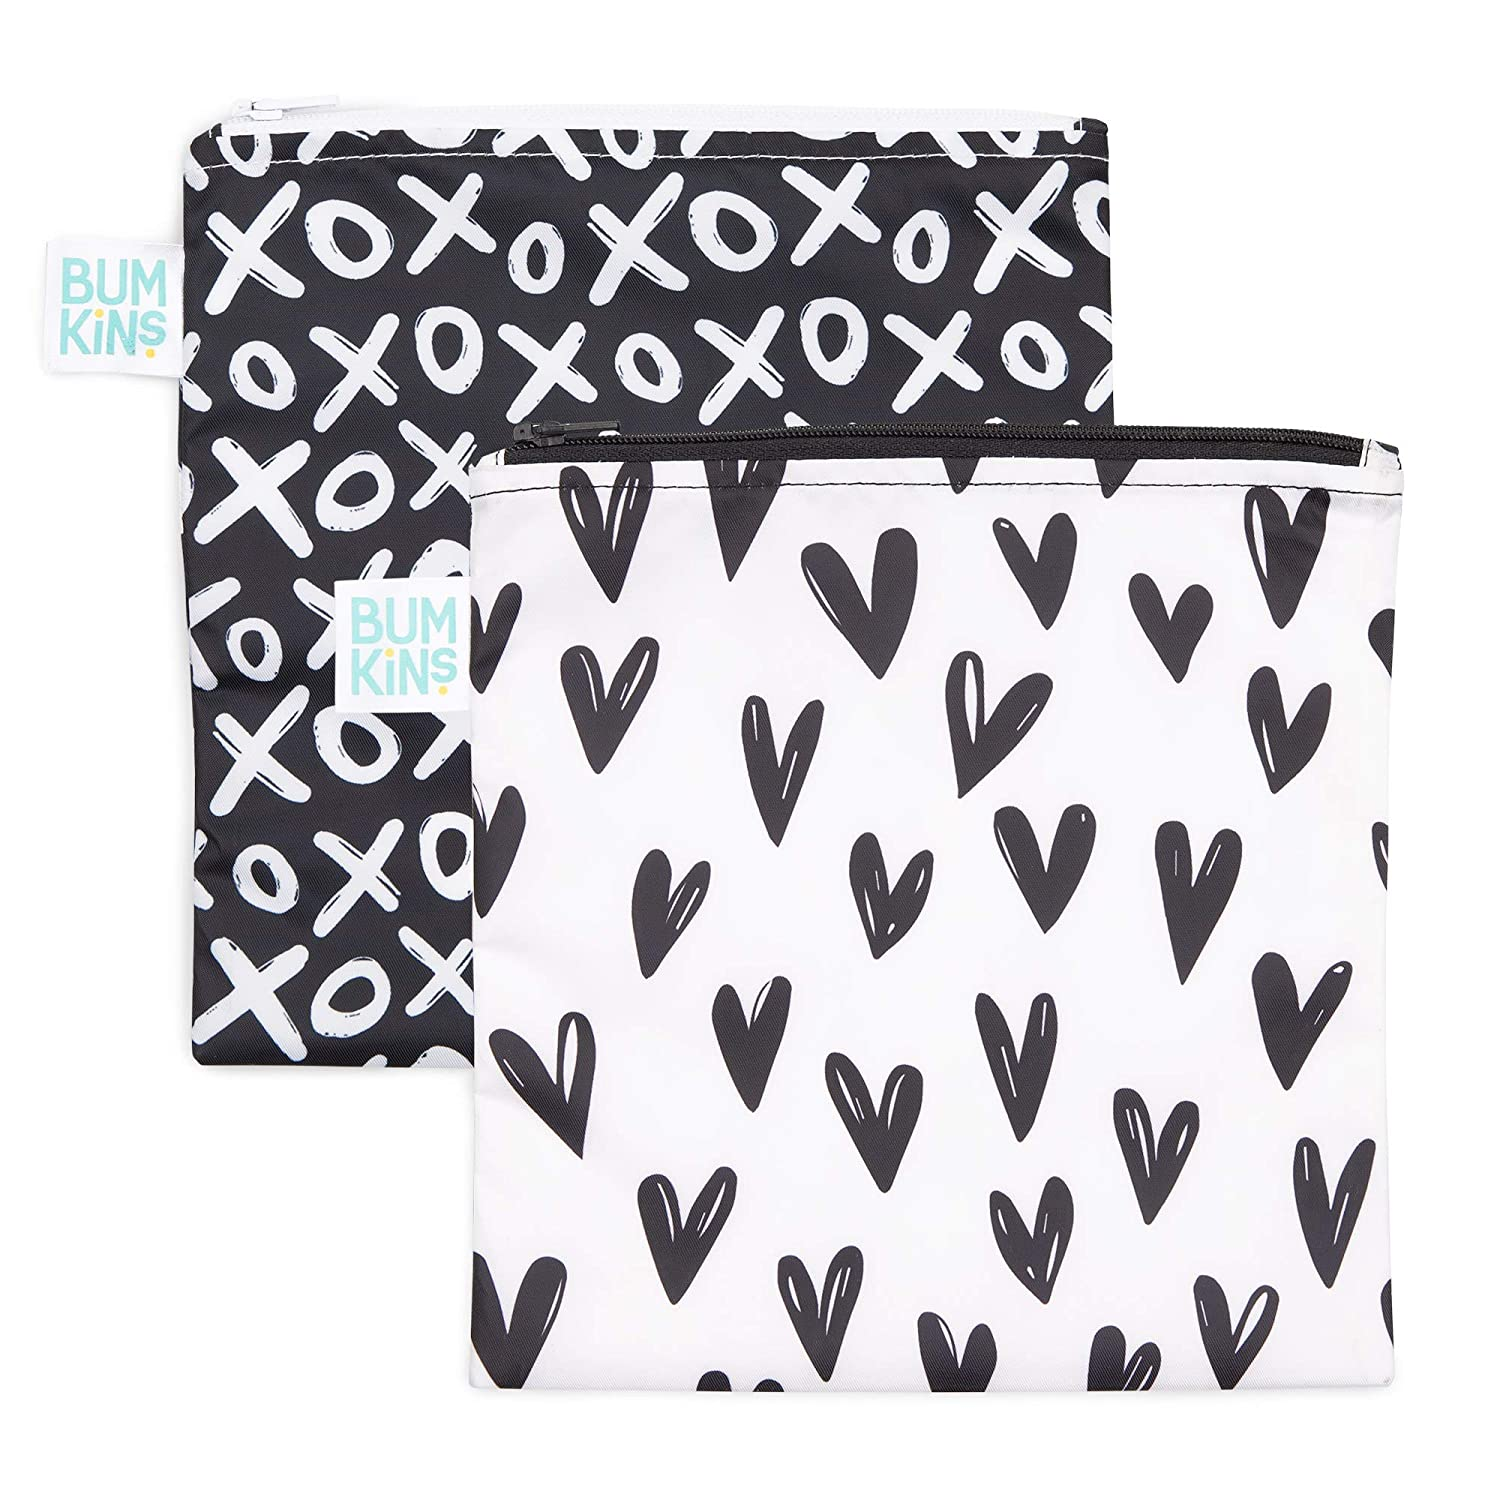 Bumkins Sandwich Bag/Snack Bag Set, Reusable, Washable, Food Safe, BPA Free 2 Pack 7x7 - Hearts & XOXO, SBL2-GG